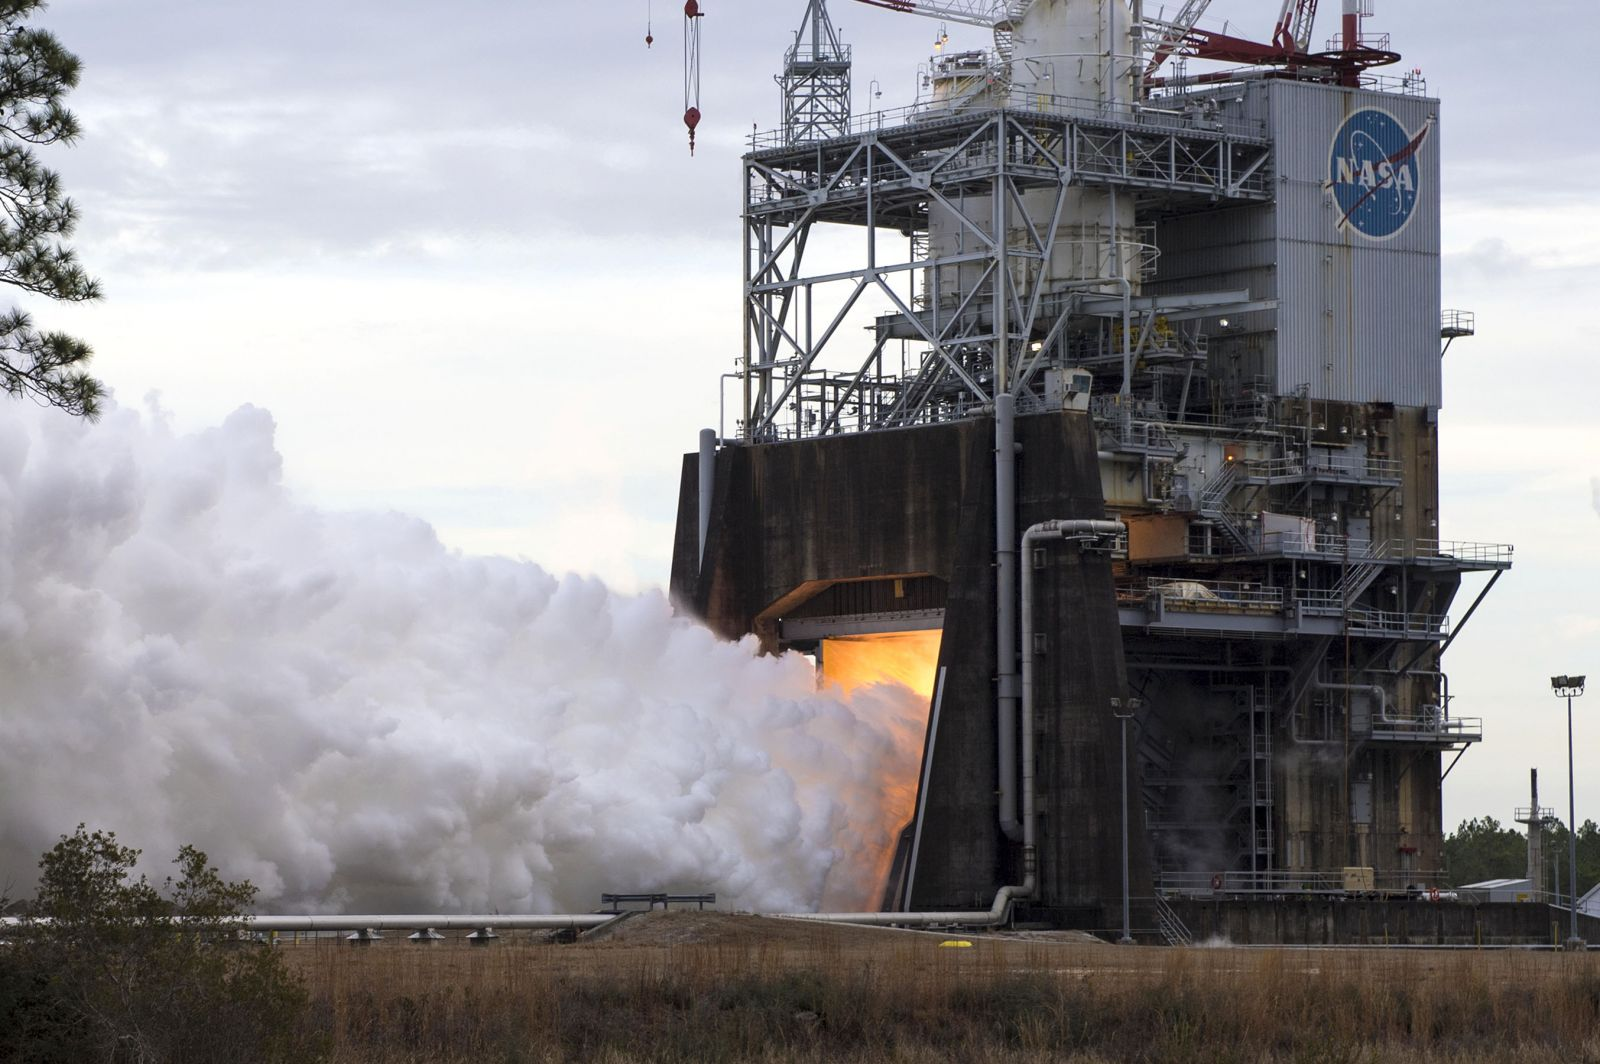 File photo of a previous RS-25 engine test. NASA plans to use the RS-25 on the first flights of the agency's new Space Launch System. Photo Credit: NASA